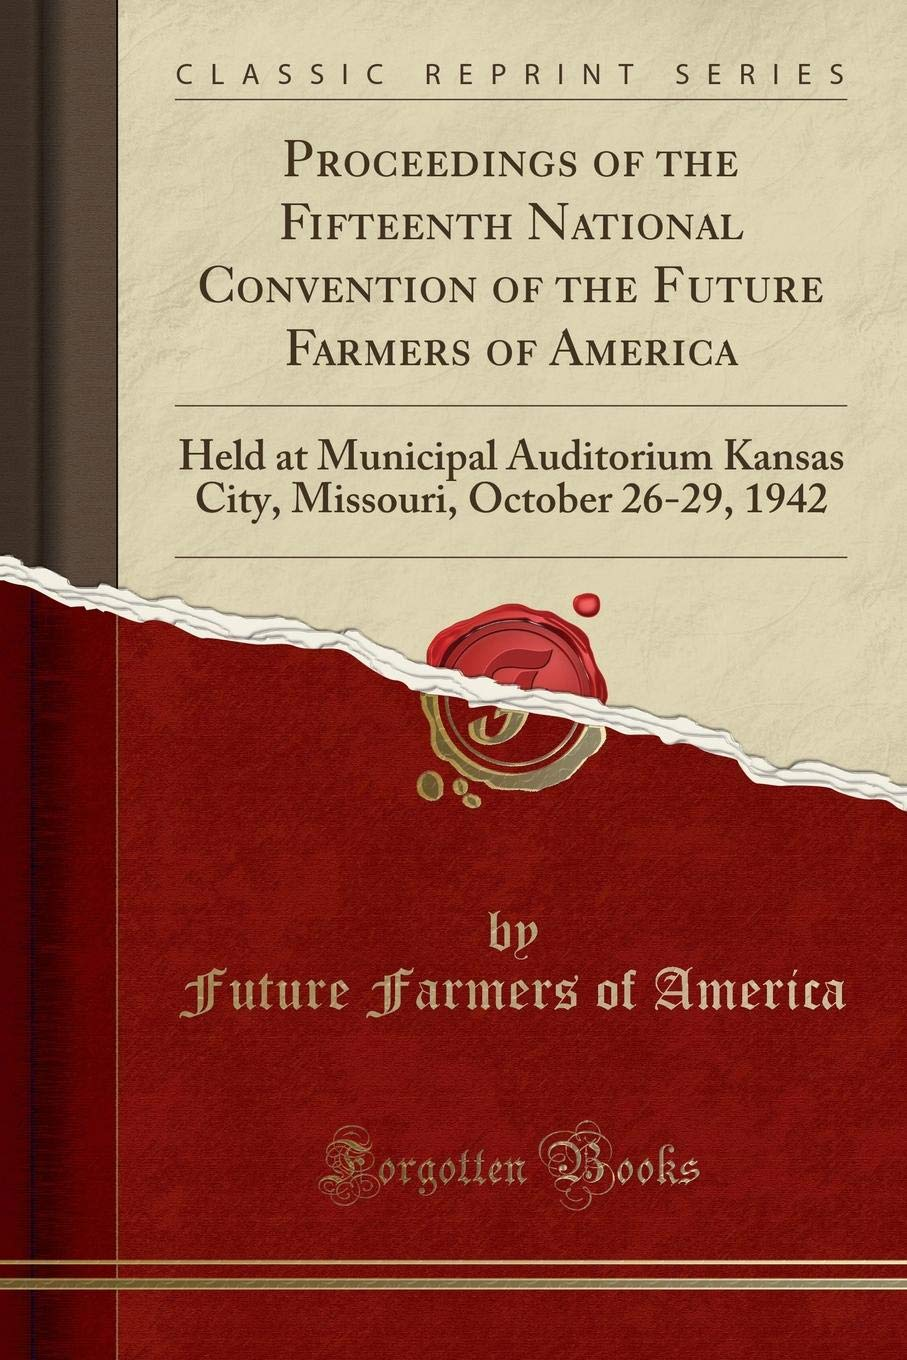 Read Online Proceedings of the Fifteenth National Convention of the Future Farmers of America: Held at Municipal Auditorium Kansas City, Missouri, October 26-29, 1942 (Classic Reprint) PDF